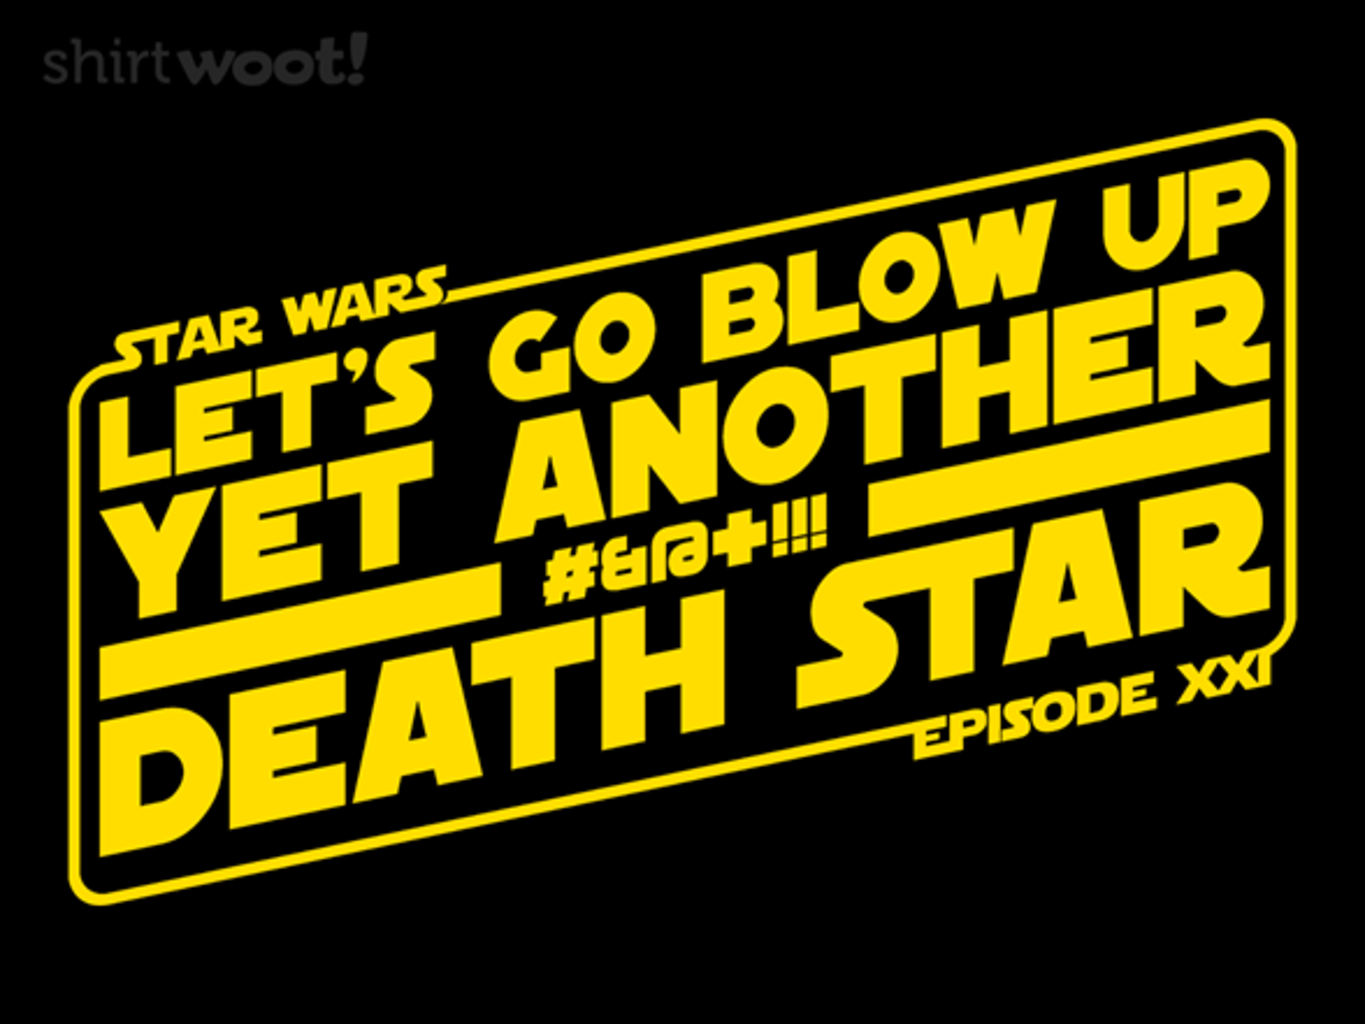 Woot!: Recycled Wars